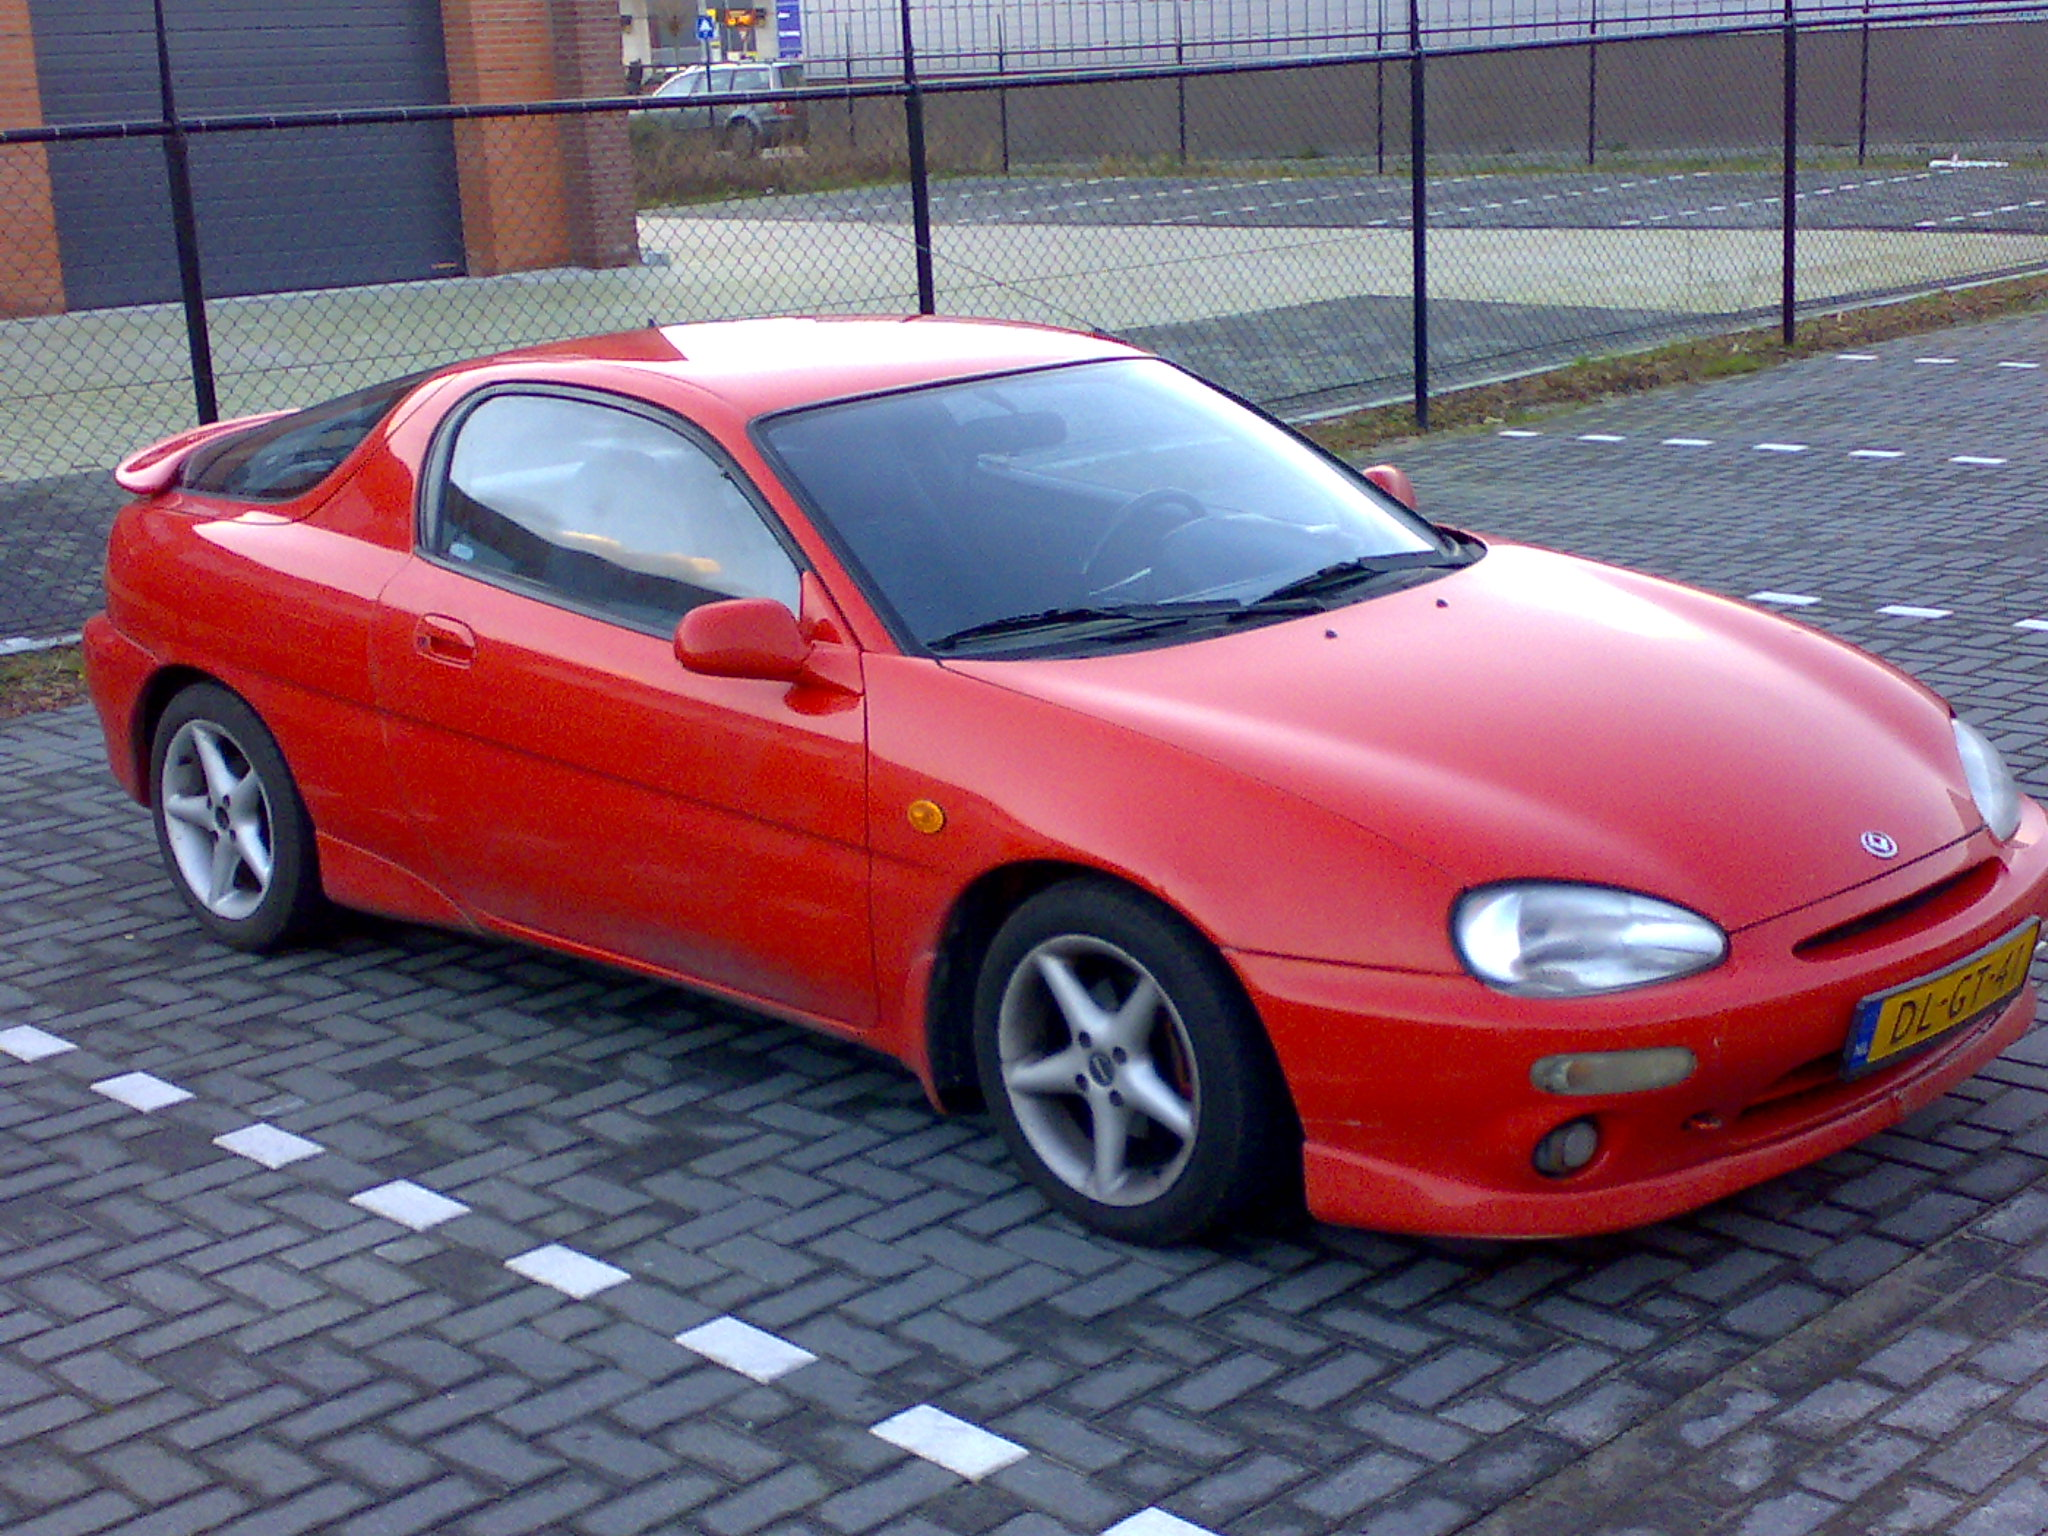 1994 mazda mx 3 information and photos zombiedrive. Black Bedroom Furniture Sets. Home Design Ideas